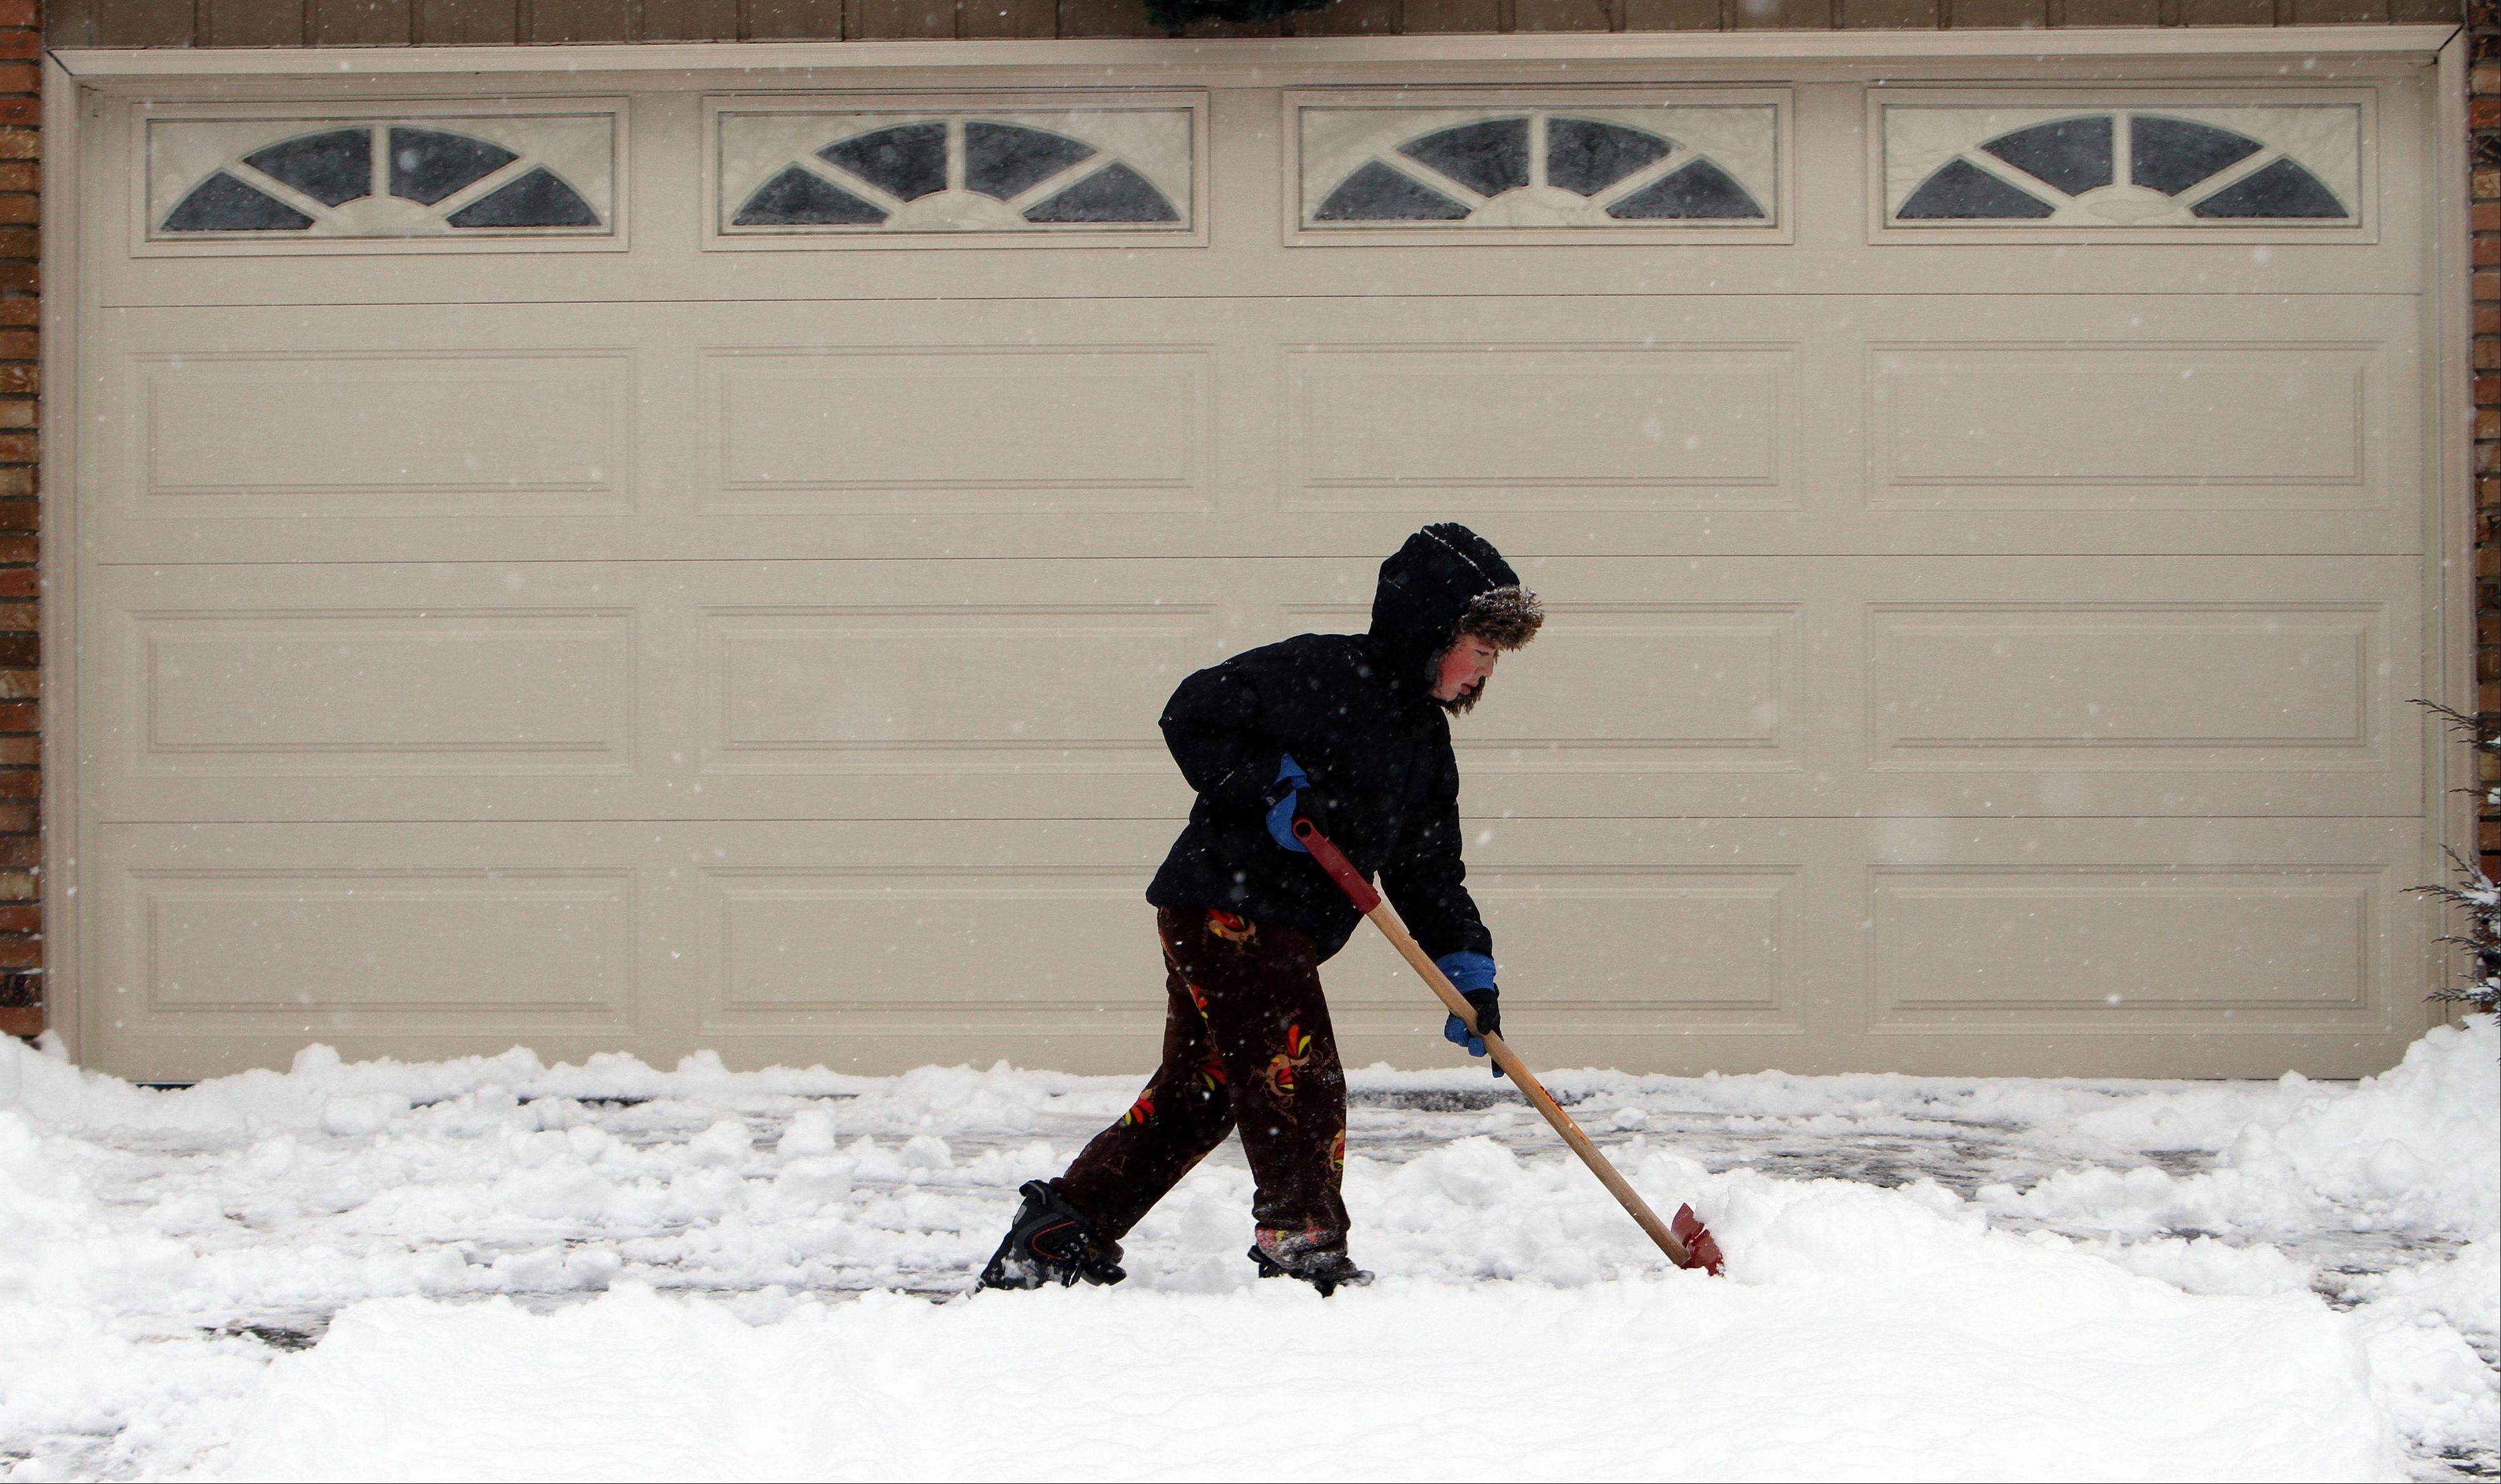 12-year-old Dylan McCauley of Libertyville shovels his driveway Thursday morning after a snowstorm dumped almost a foot of snow on the area.